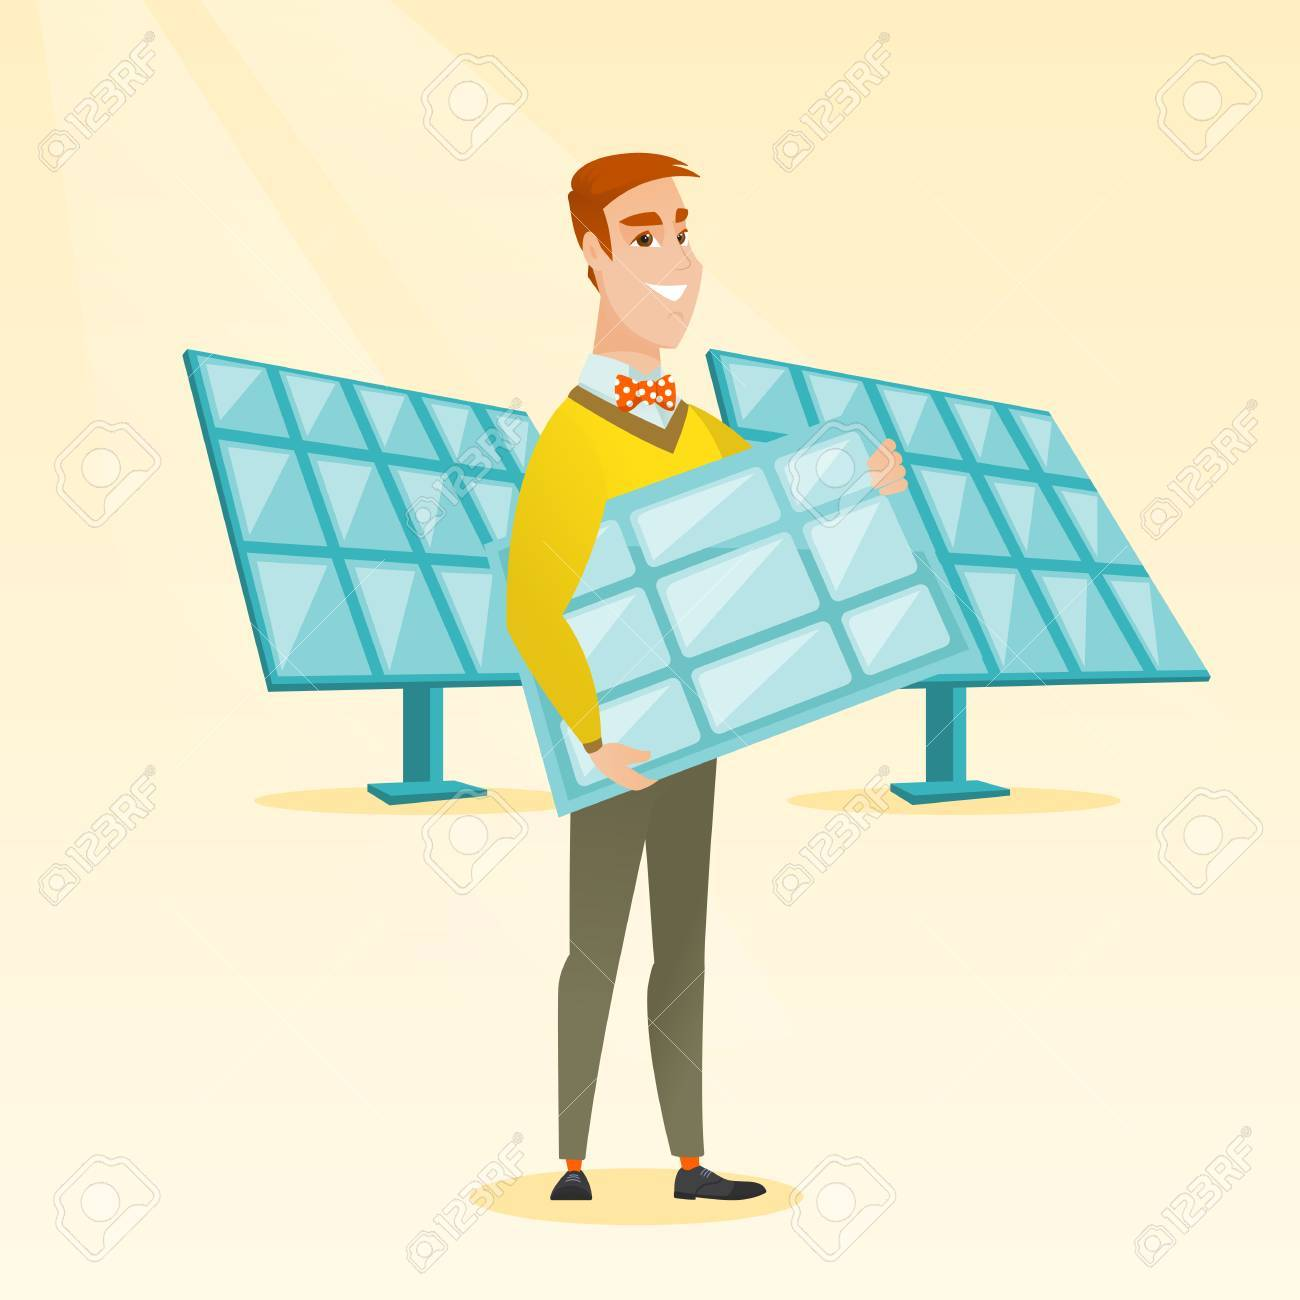 caucasian worker of solar power plant holding solar panel incaucasian worker of solar power plant holding solar panel in hands young man with panel